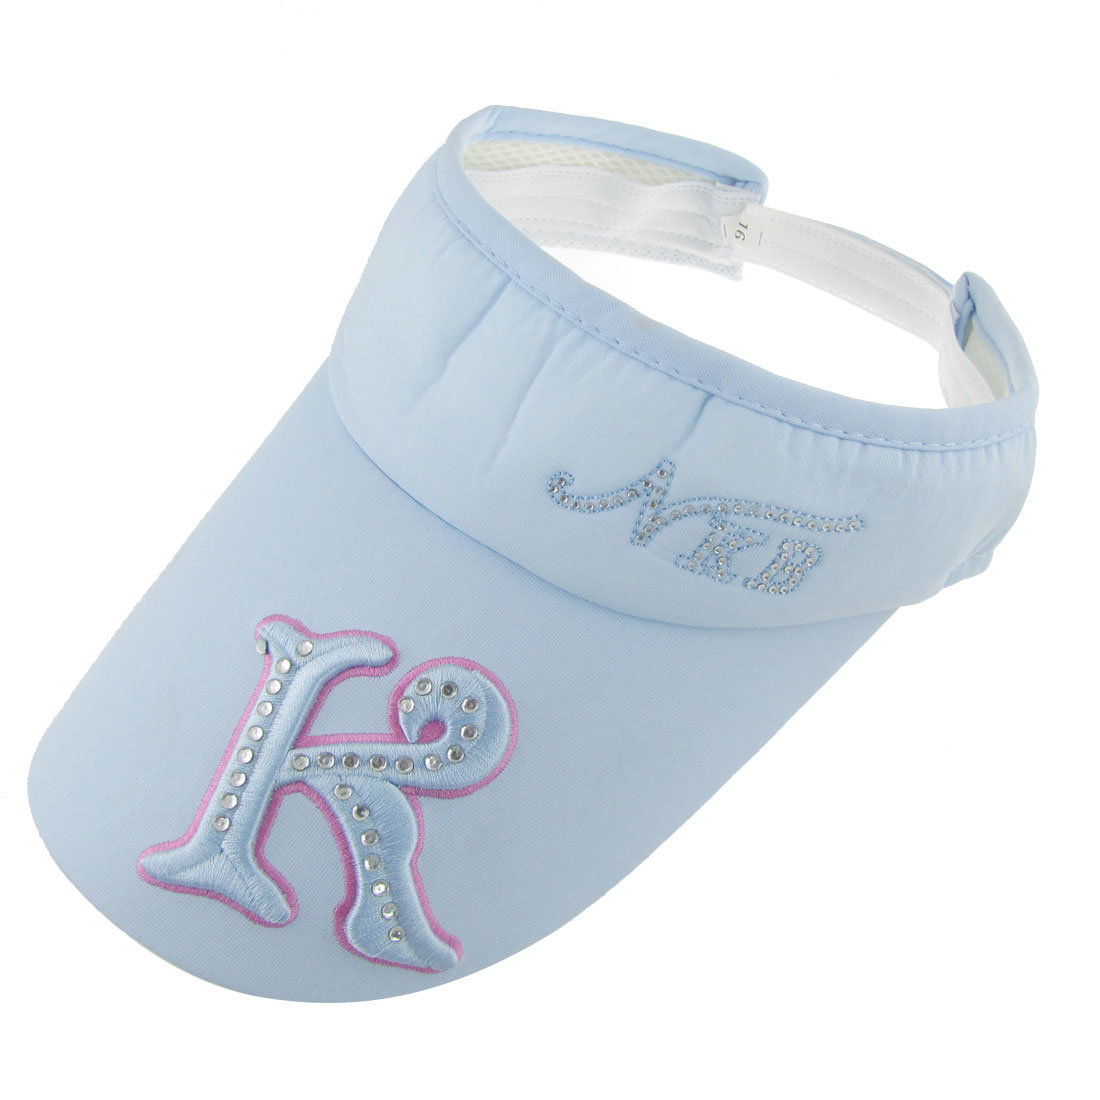 Letters Prints Top Openning Style Sun Visor Cap Hat Light Blue for Lady